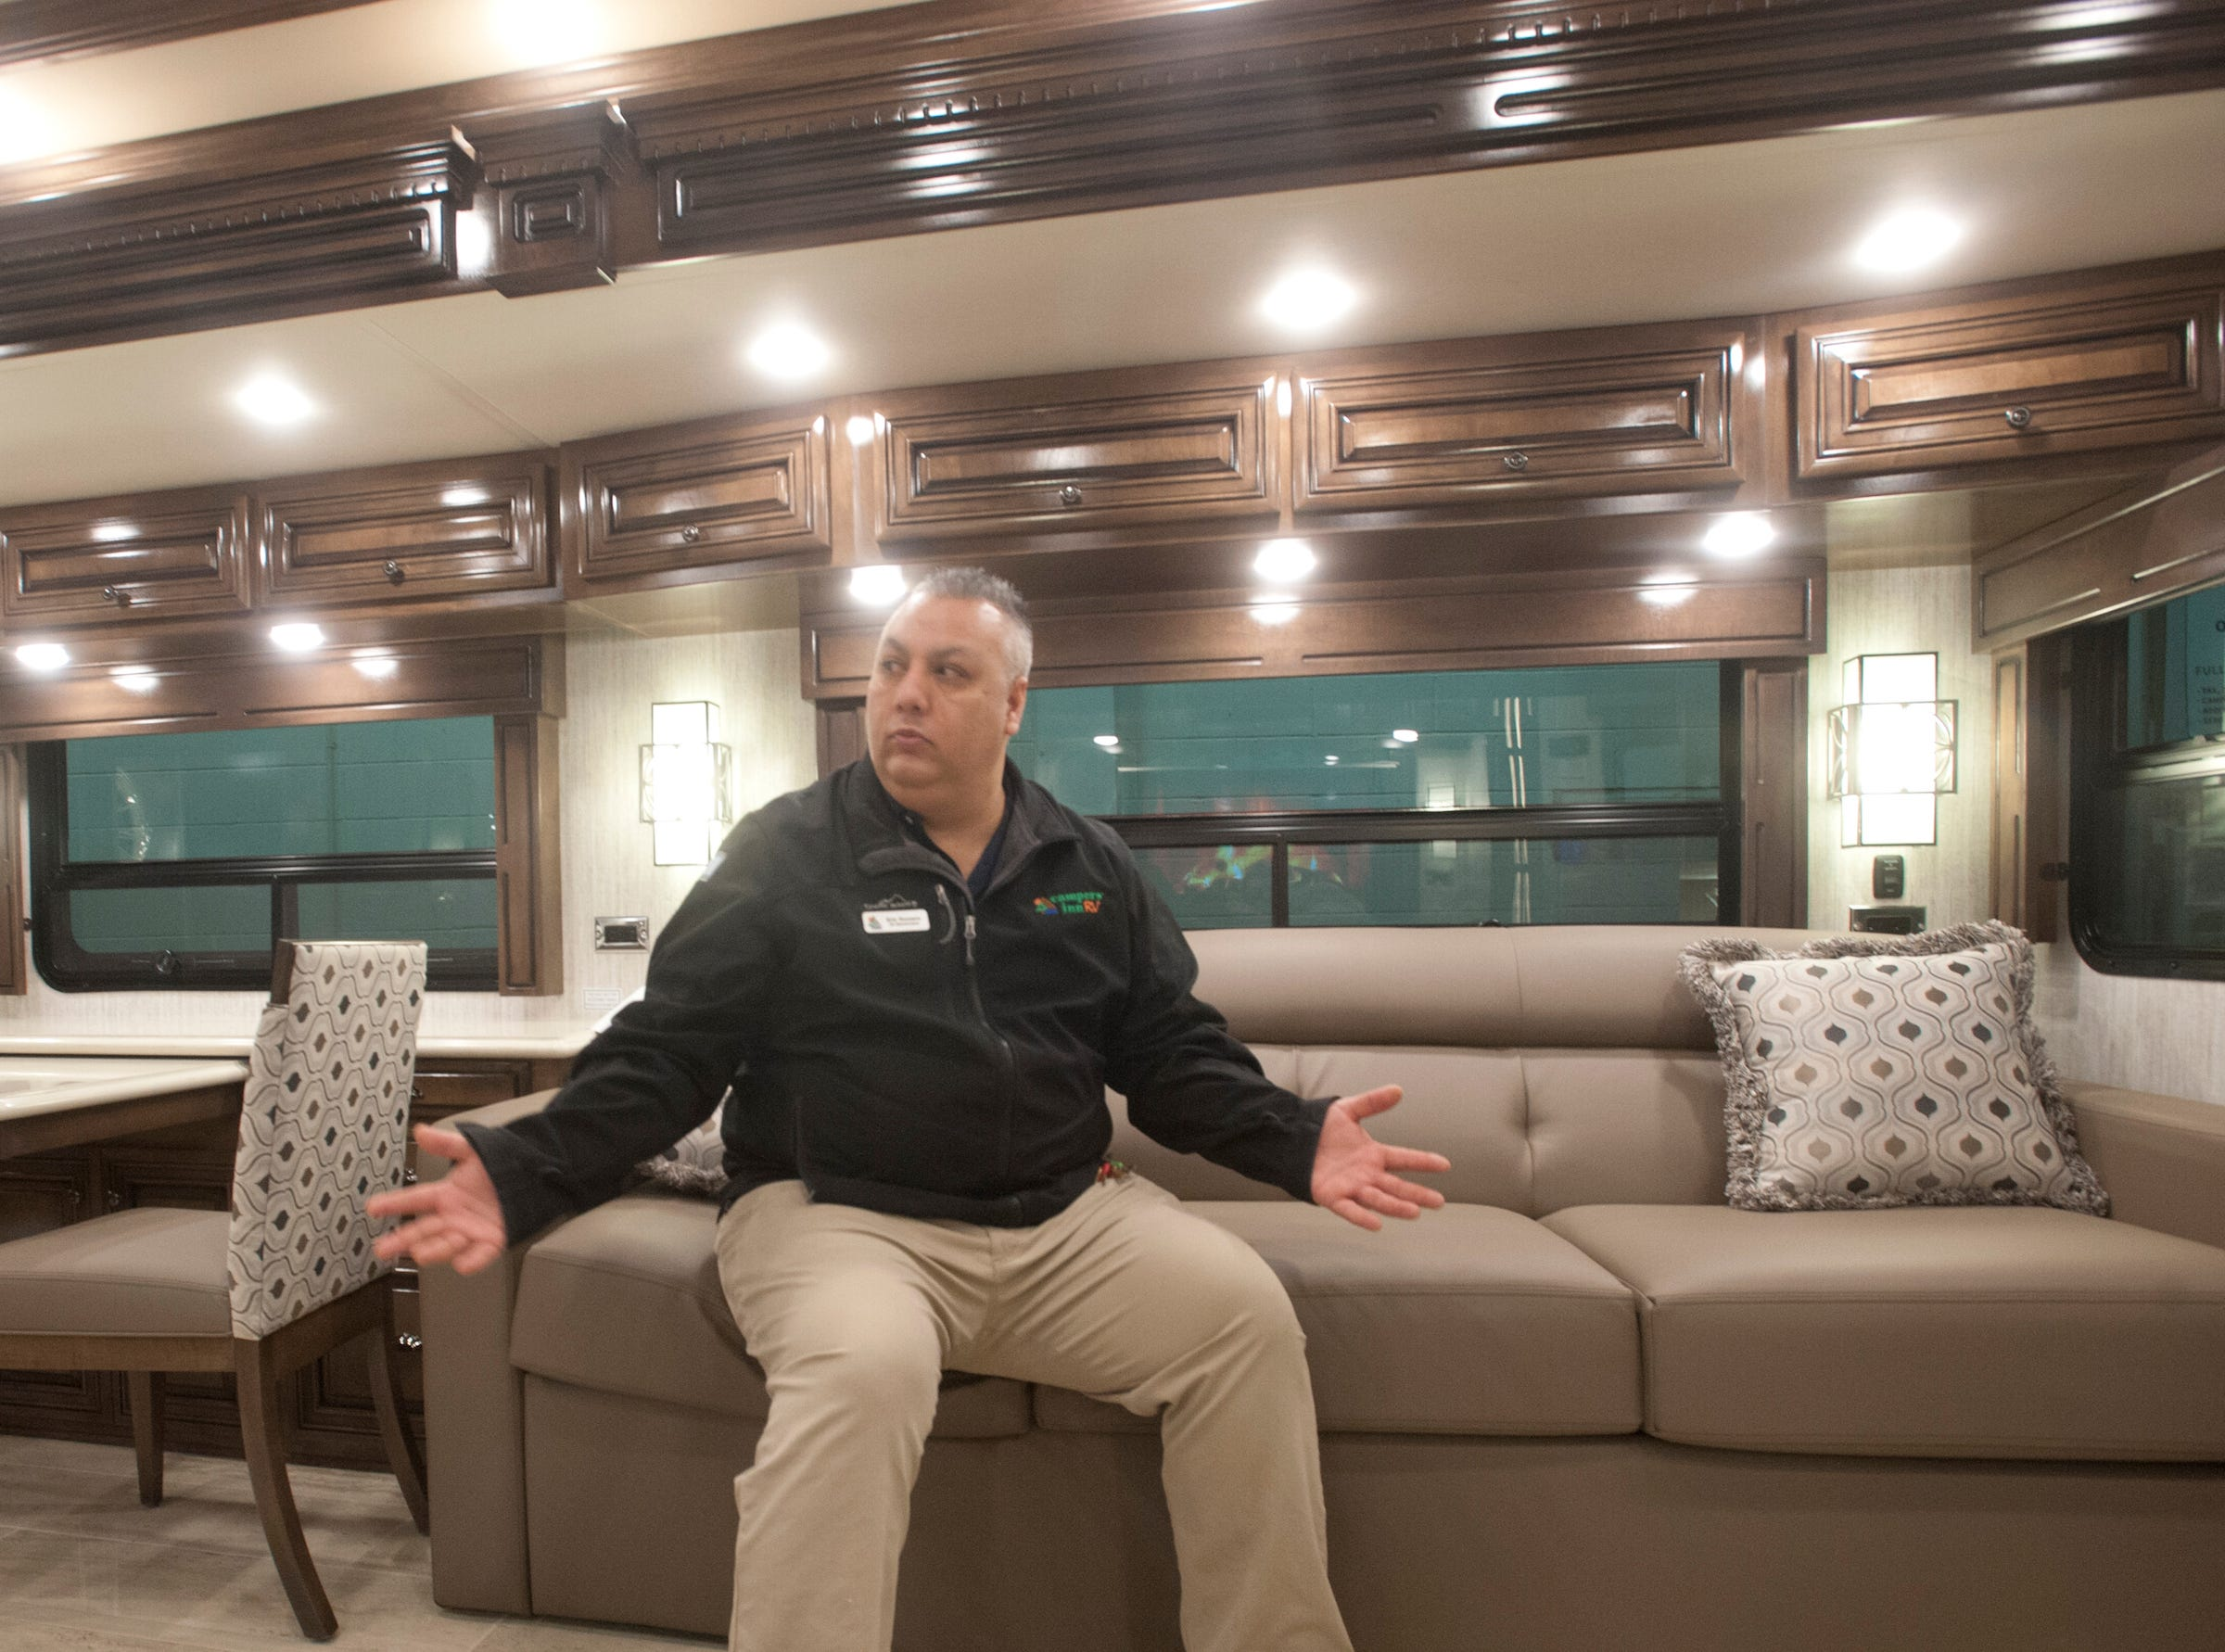 Eric Romero, sales representative for Campers Inn in Clarksville, sits atop the driver's side living room couch of the Dutch Star as he explains the recreational vehicle's features. The couch contains a fold-out bed.11 December 2018